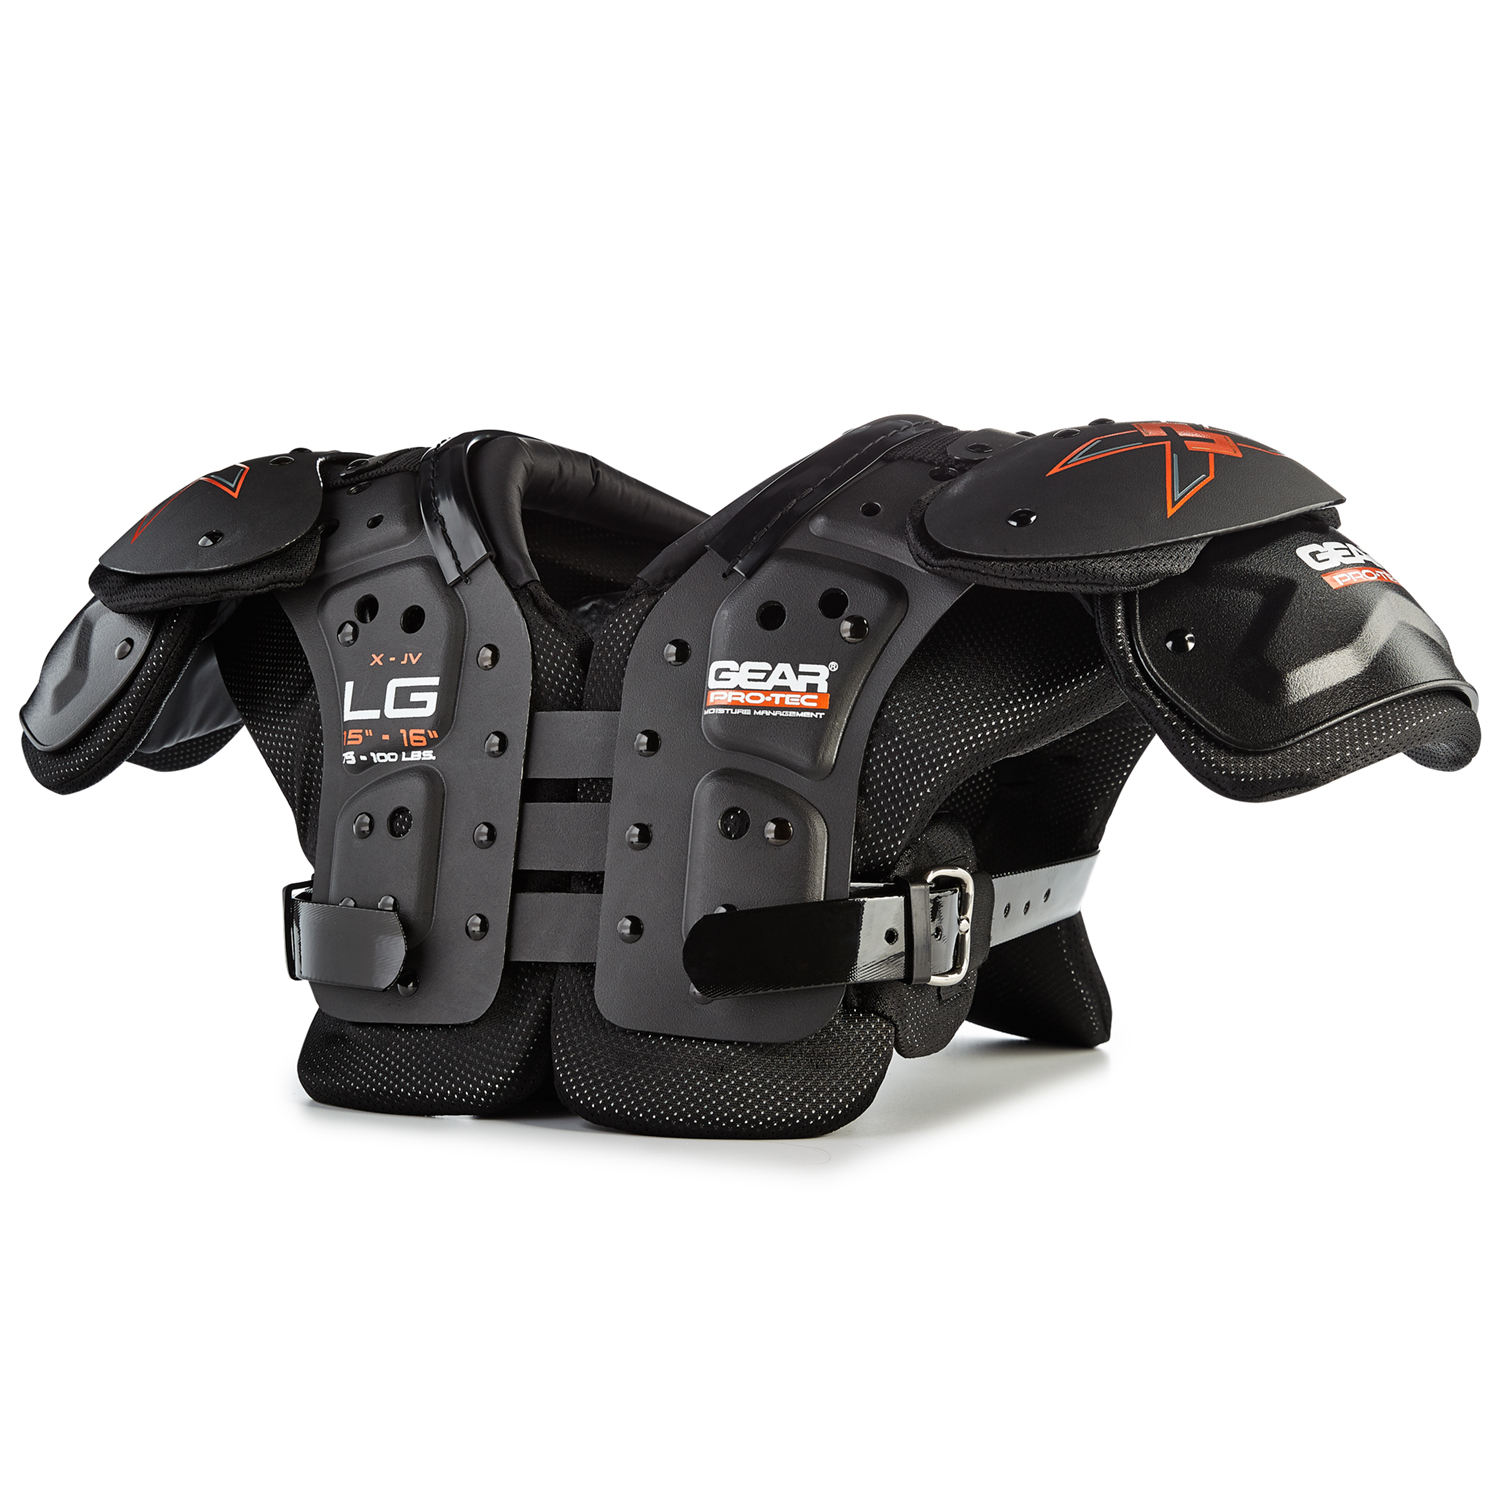 Gear Protec X3  JV Shoulder Pad